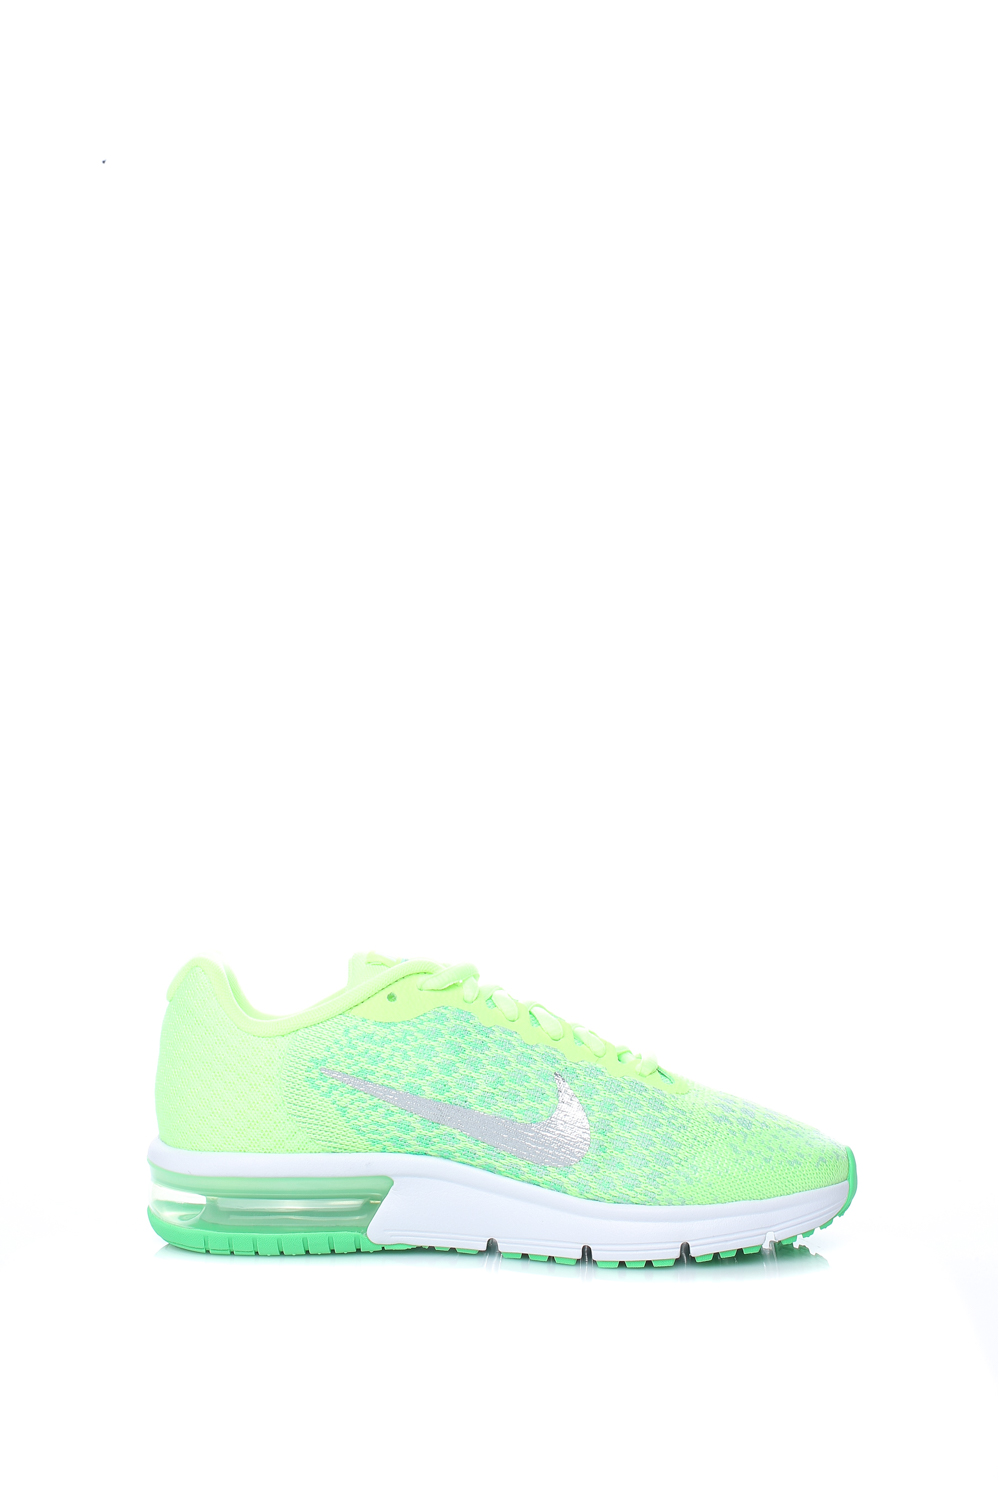 NIKE - Παιδικά αθλητικά παπούτσια Nike AIR MAX SEQUENT 2 (GS) πράσινα f64e3e83c52